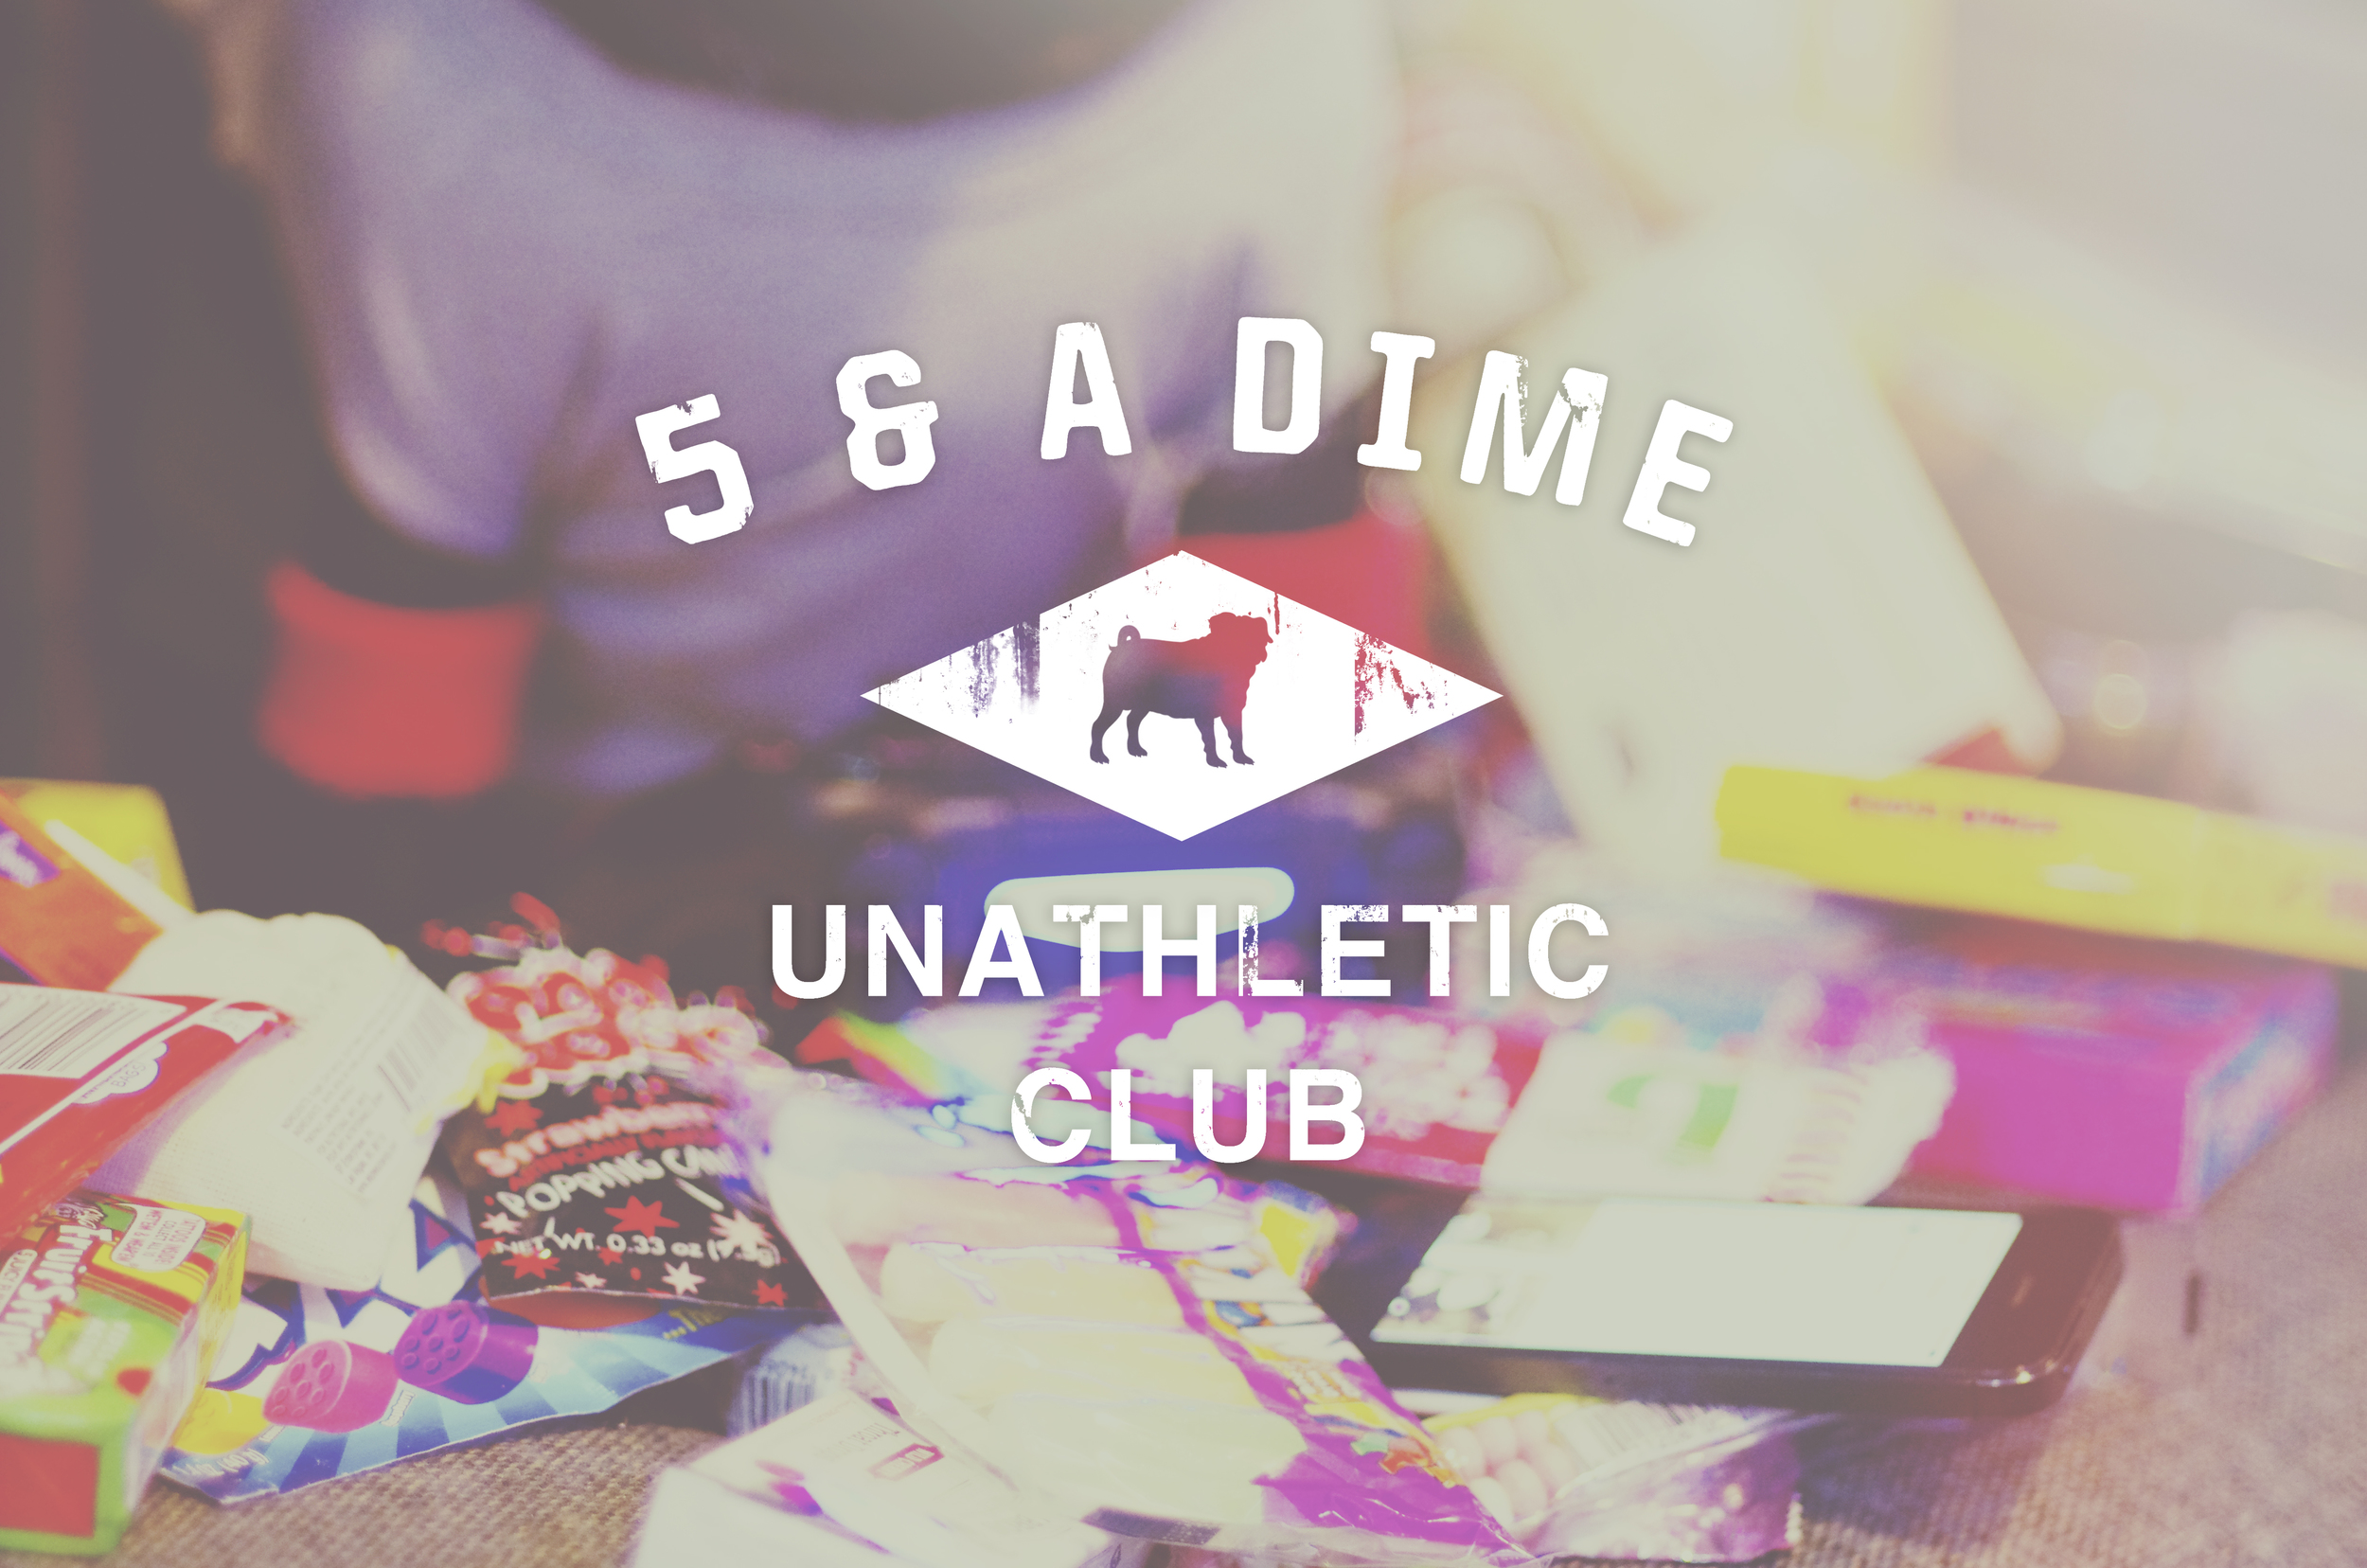 Introducing: The 5&A Dime Unathletic Club!